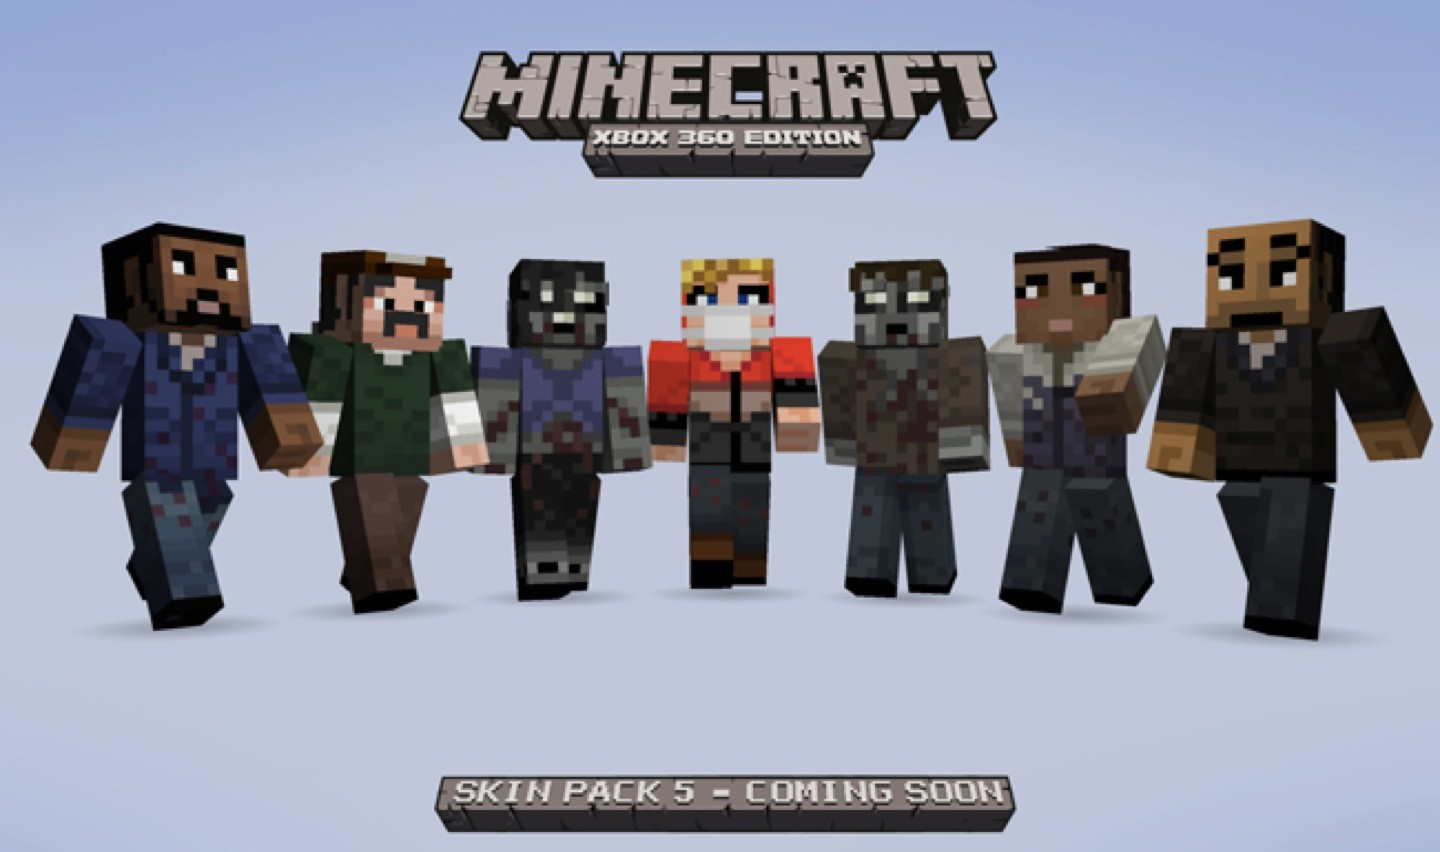 Pokemon and Walking Dead skins for Minecraft and Cubeworld